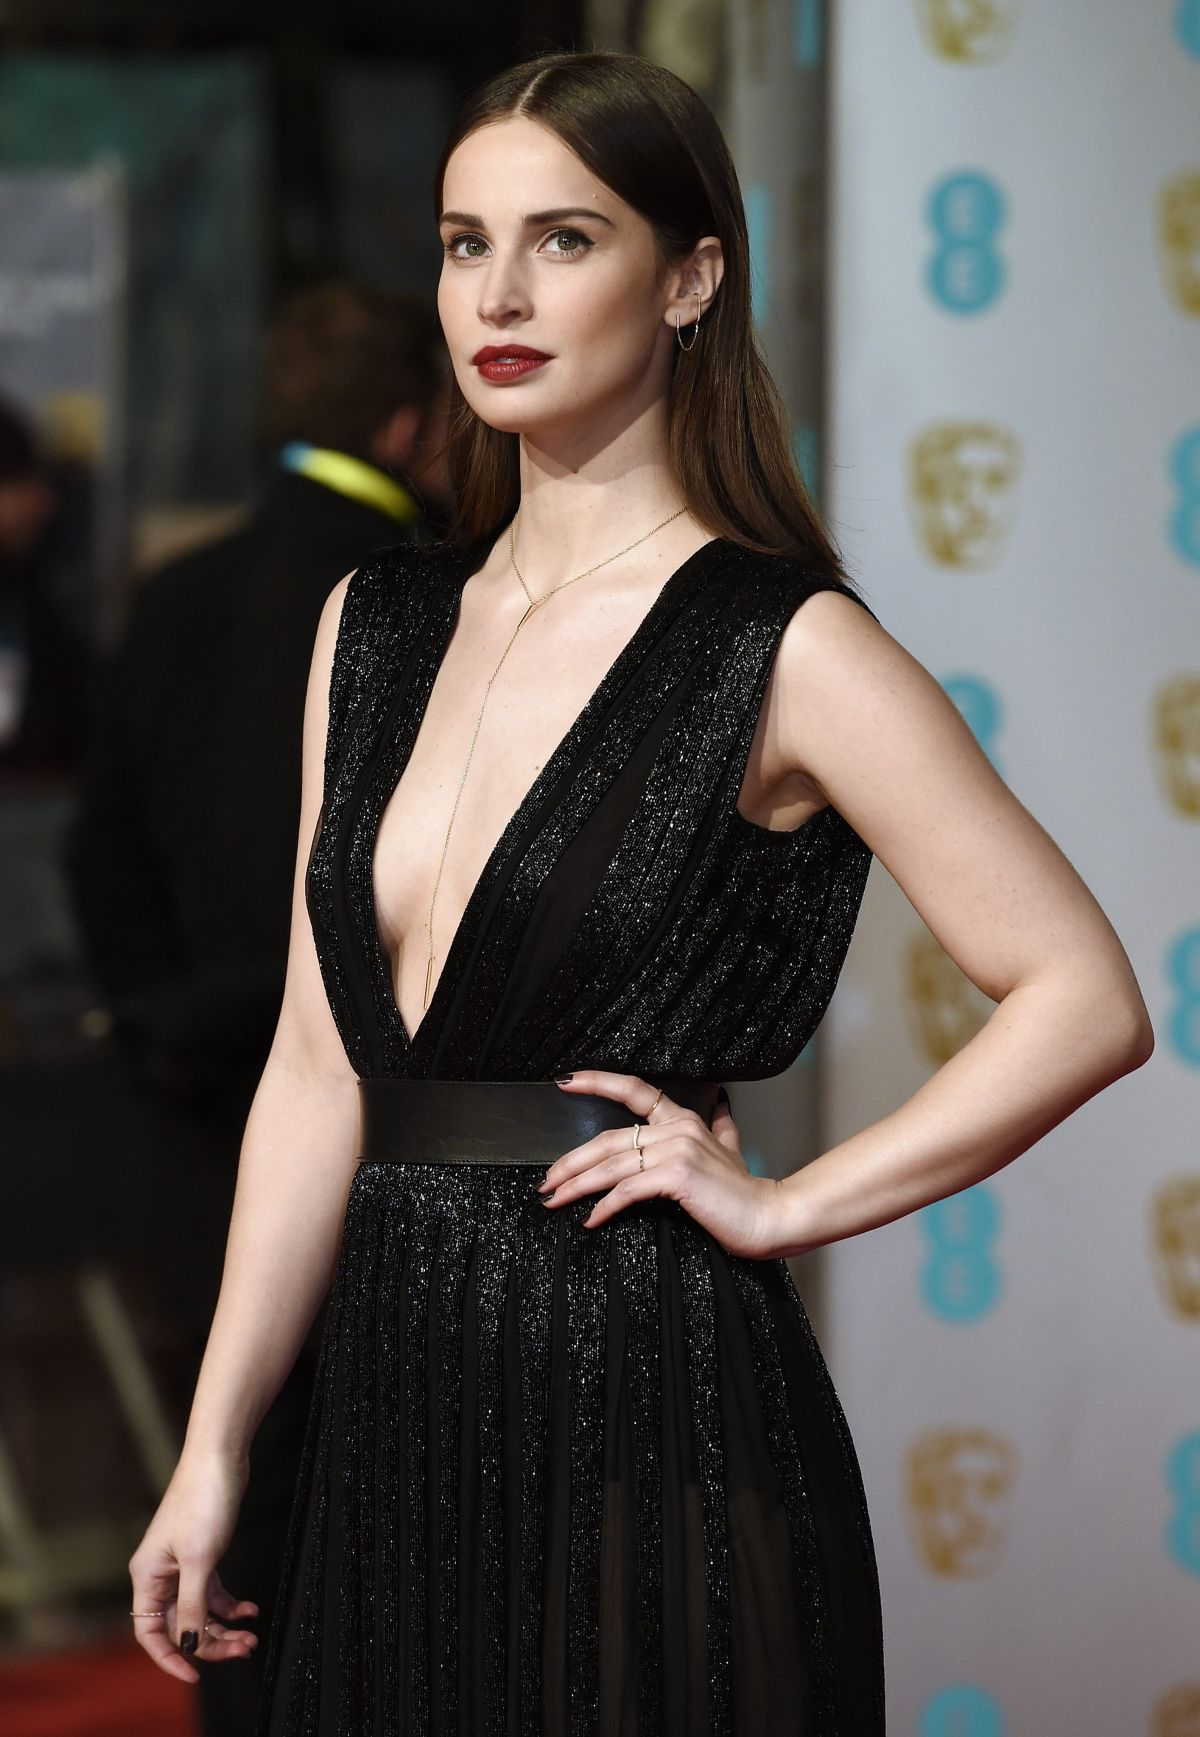 HEIDA REED at British Academy of Film and Television Arts Awards 2016 in London 02/14/2016